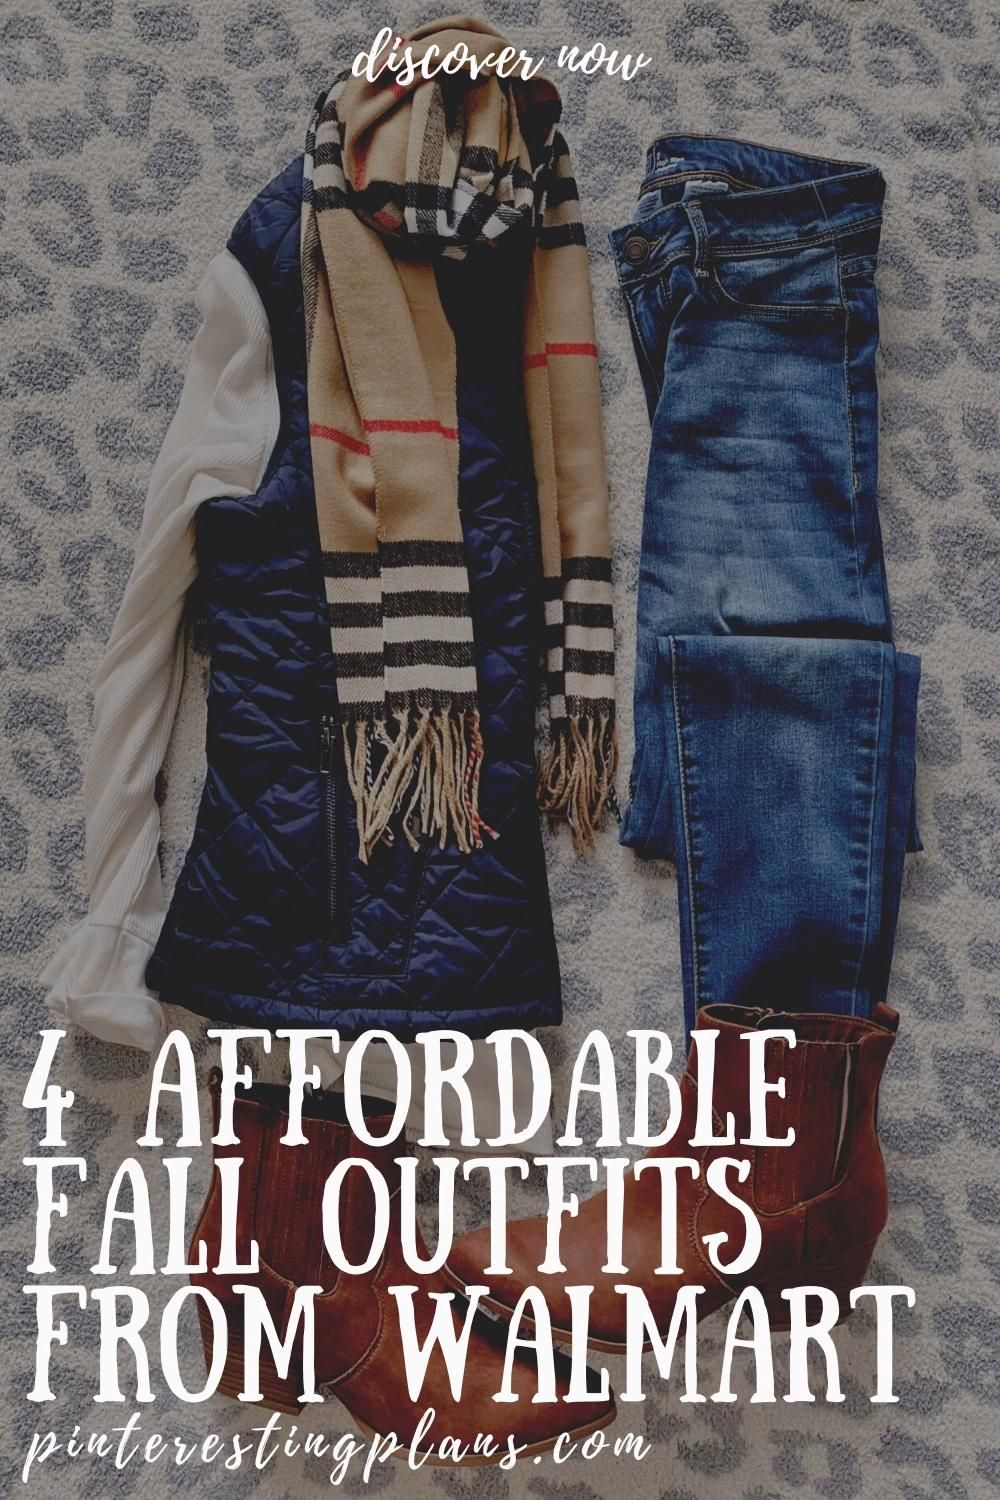 4 AFFORDABLE FALL OUTFITS FROM WALMART